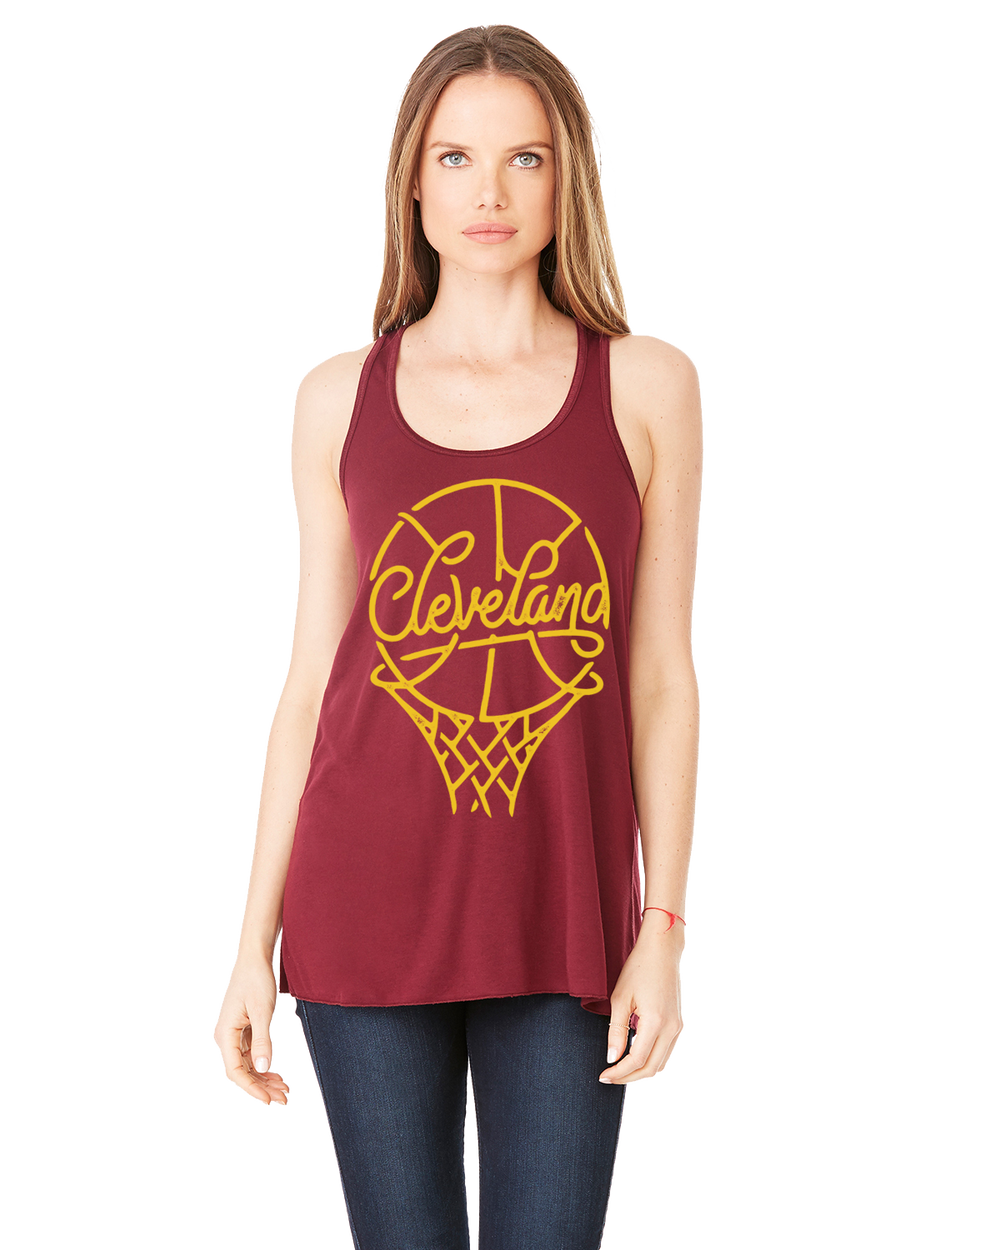 Image of Cleveland Basketball ladies Tanktop